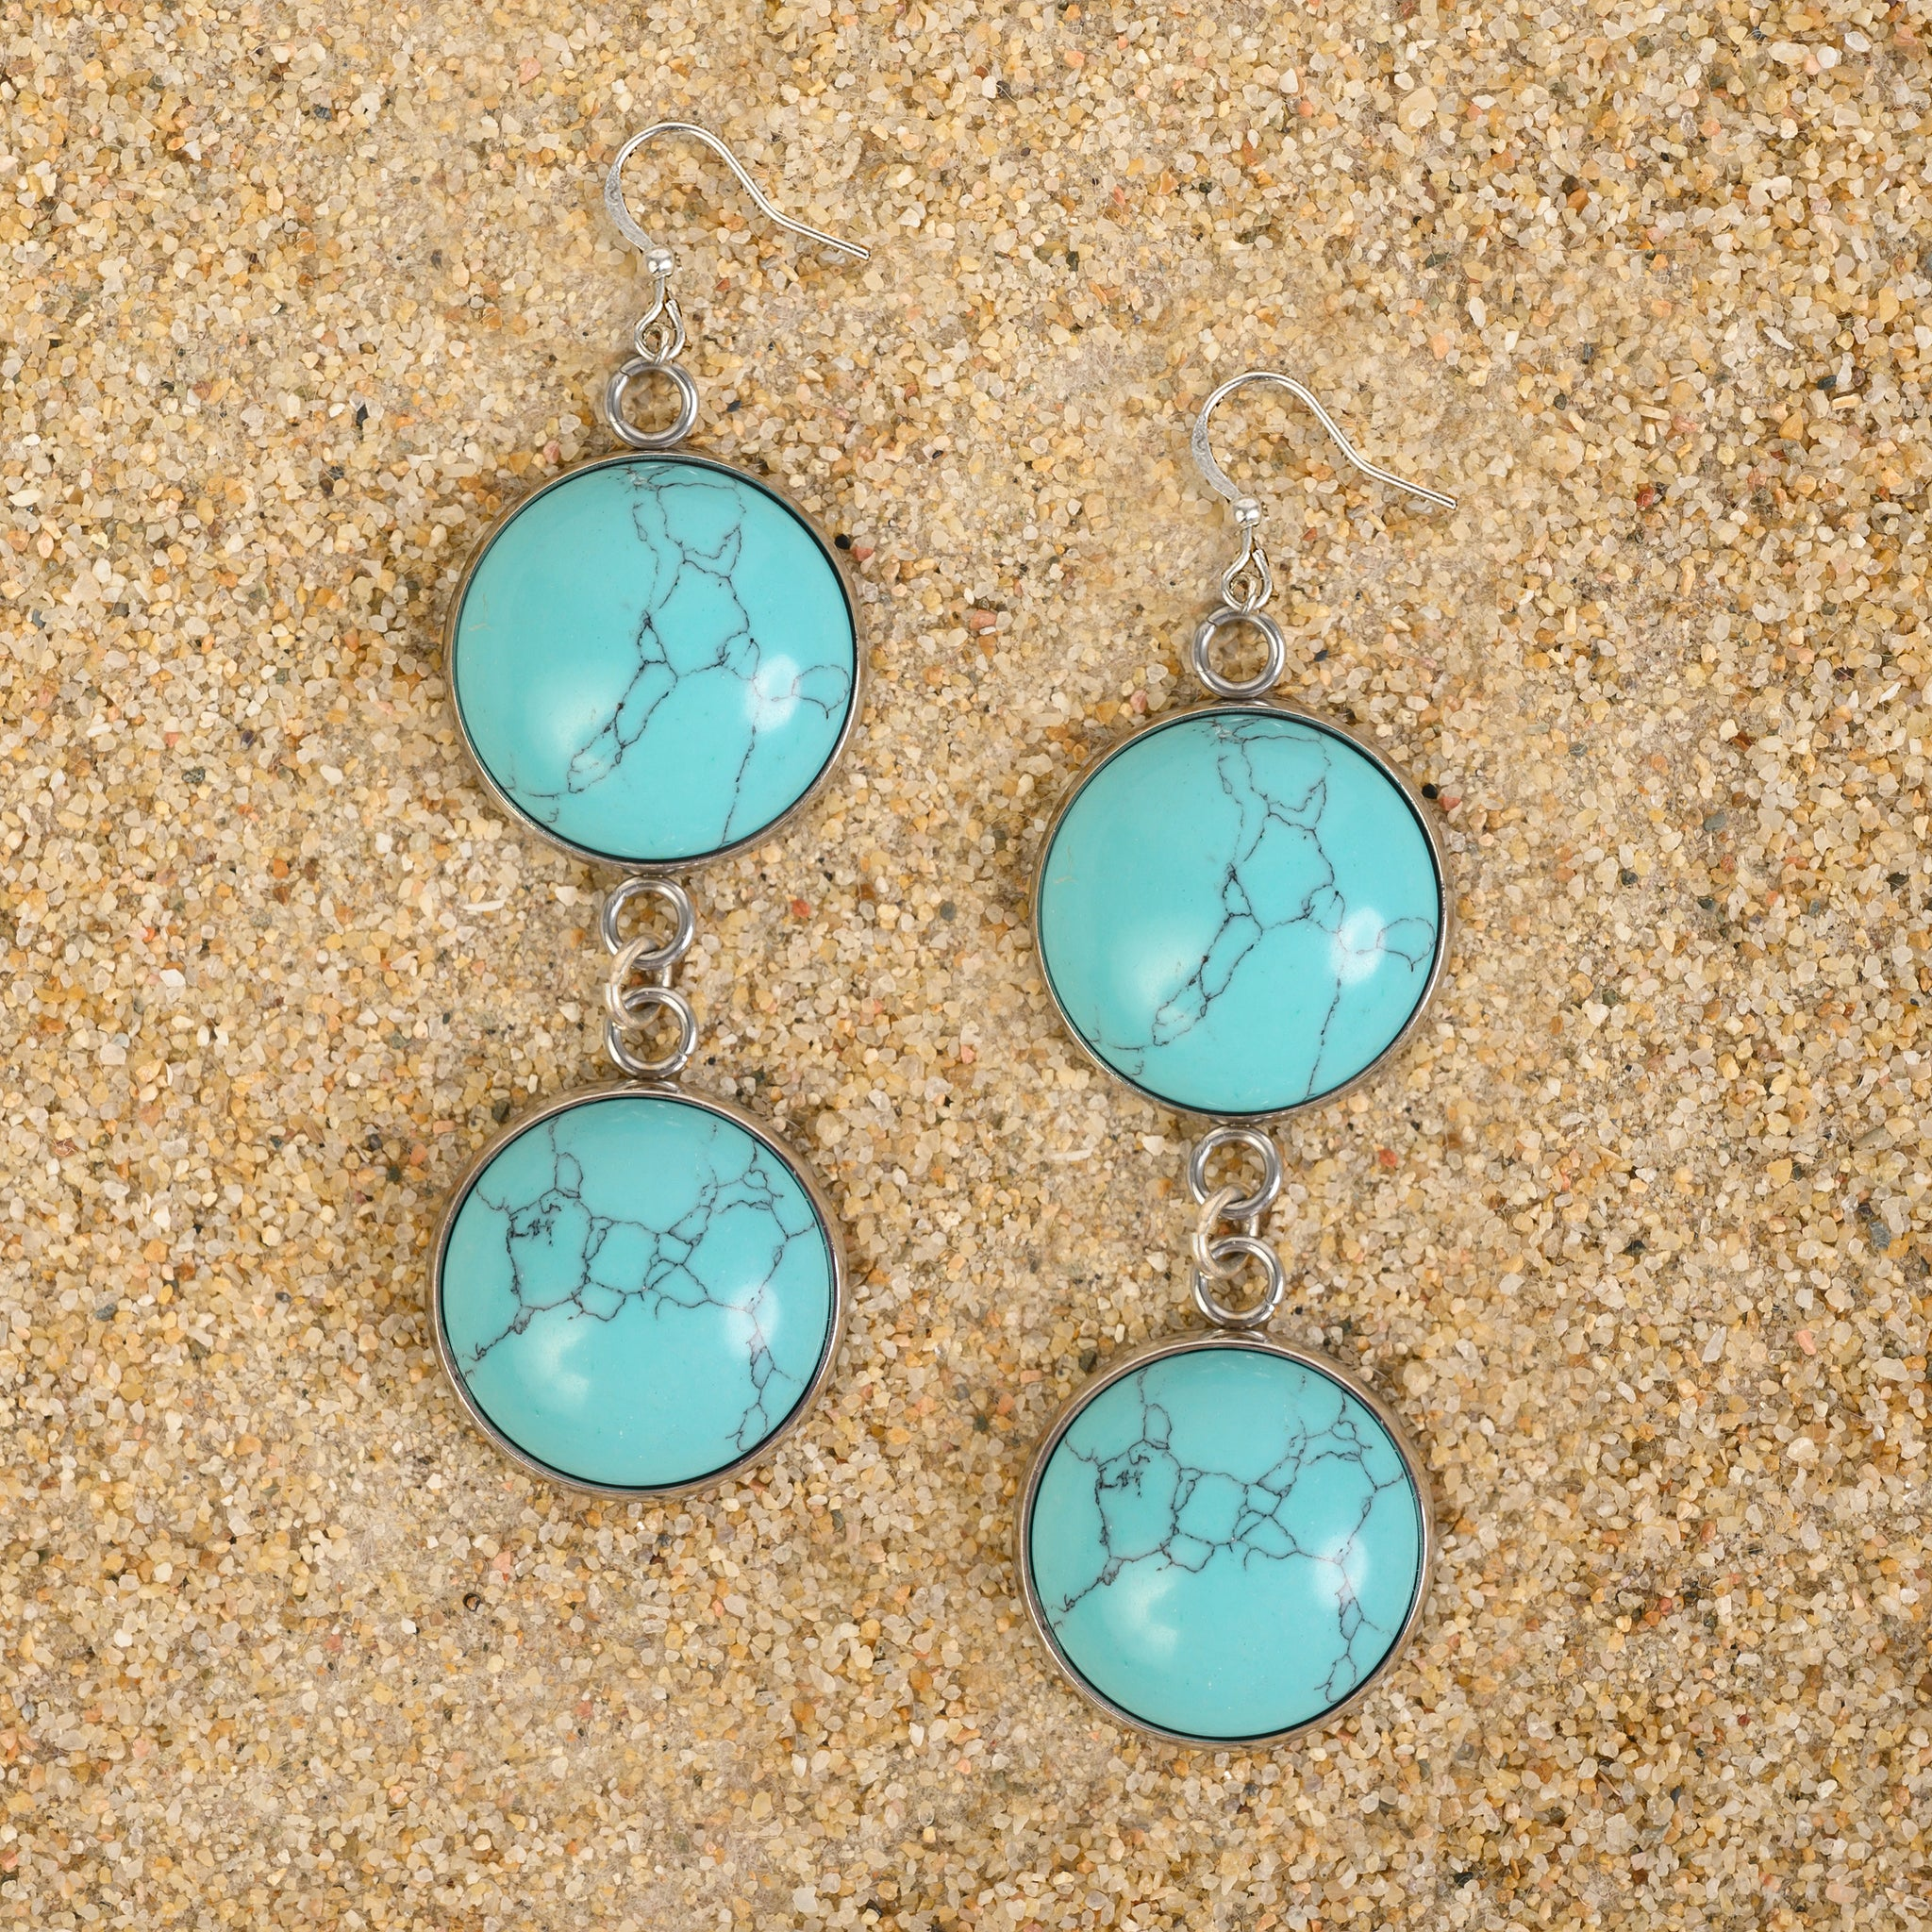 Princeton Double Dome Semi-Precious Gemstone Dangle Cabochon Earrings